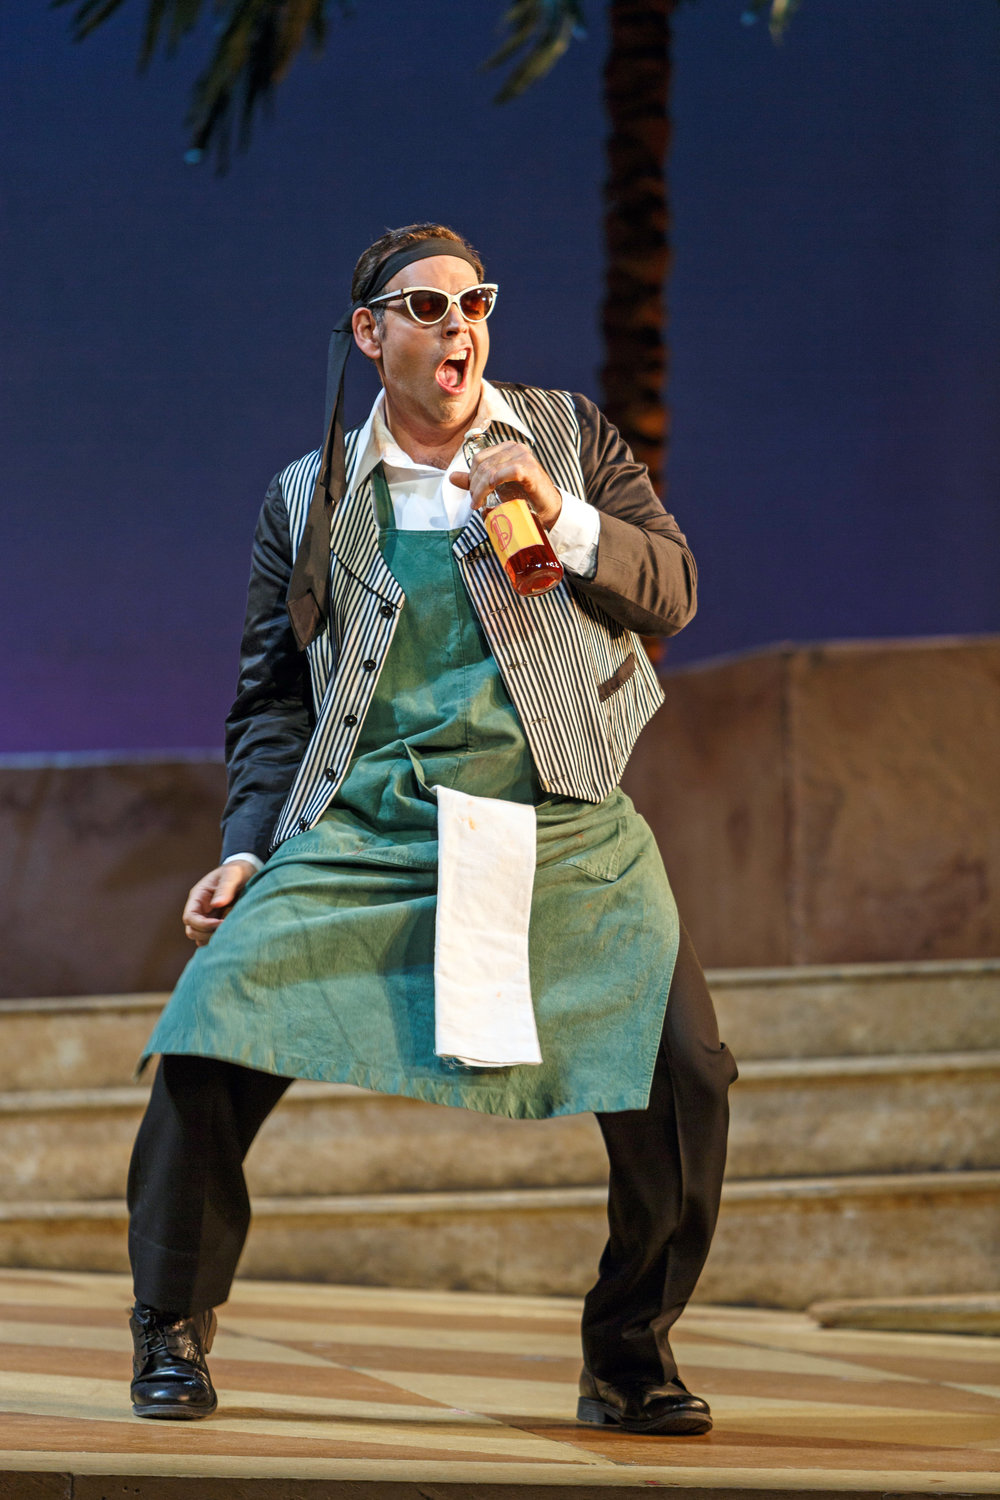 Nemorino (Dimitri Pittas) has newfound swagger after consuming the Elixir of Love